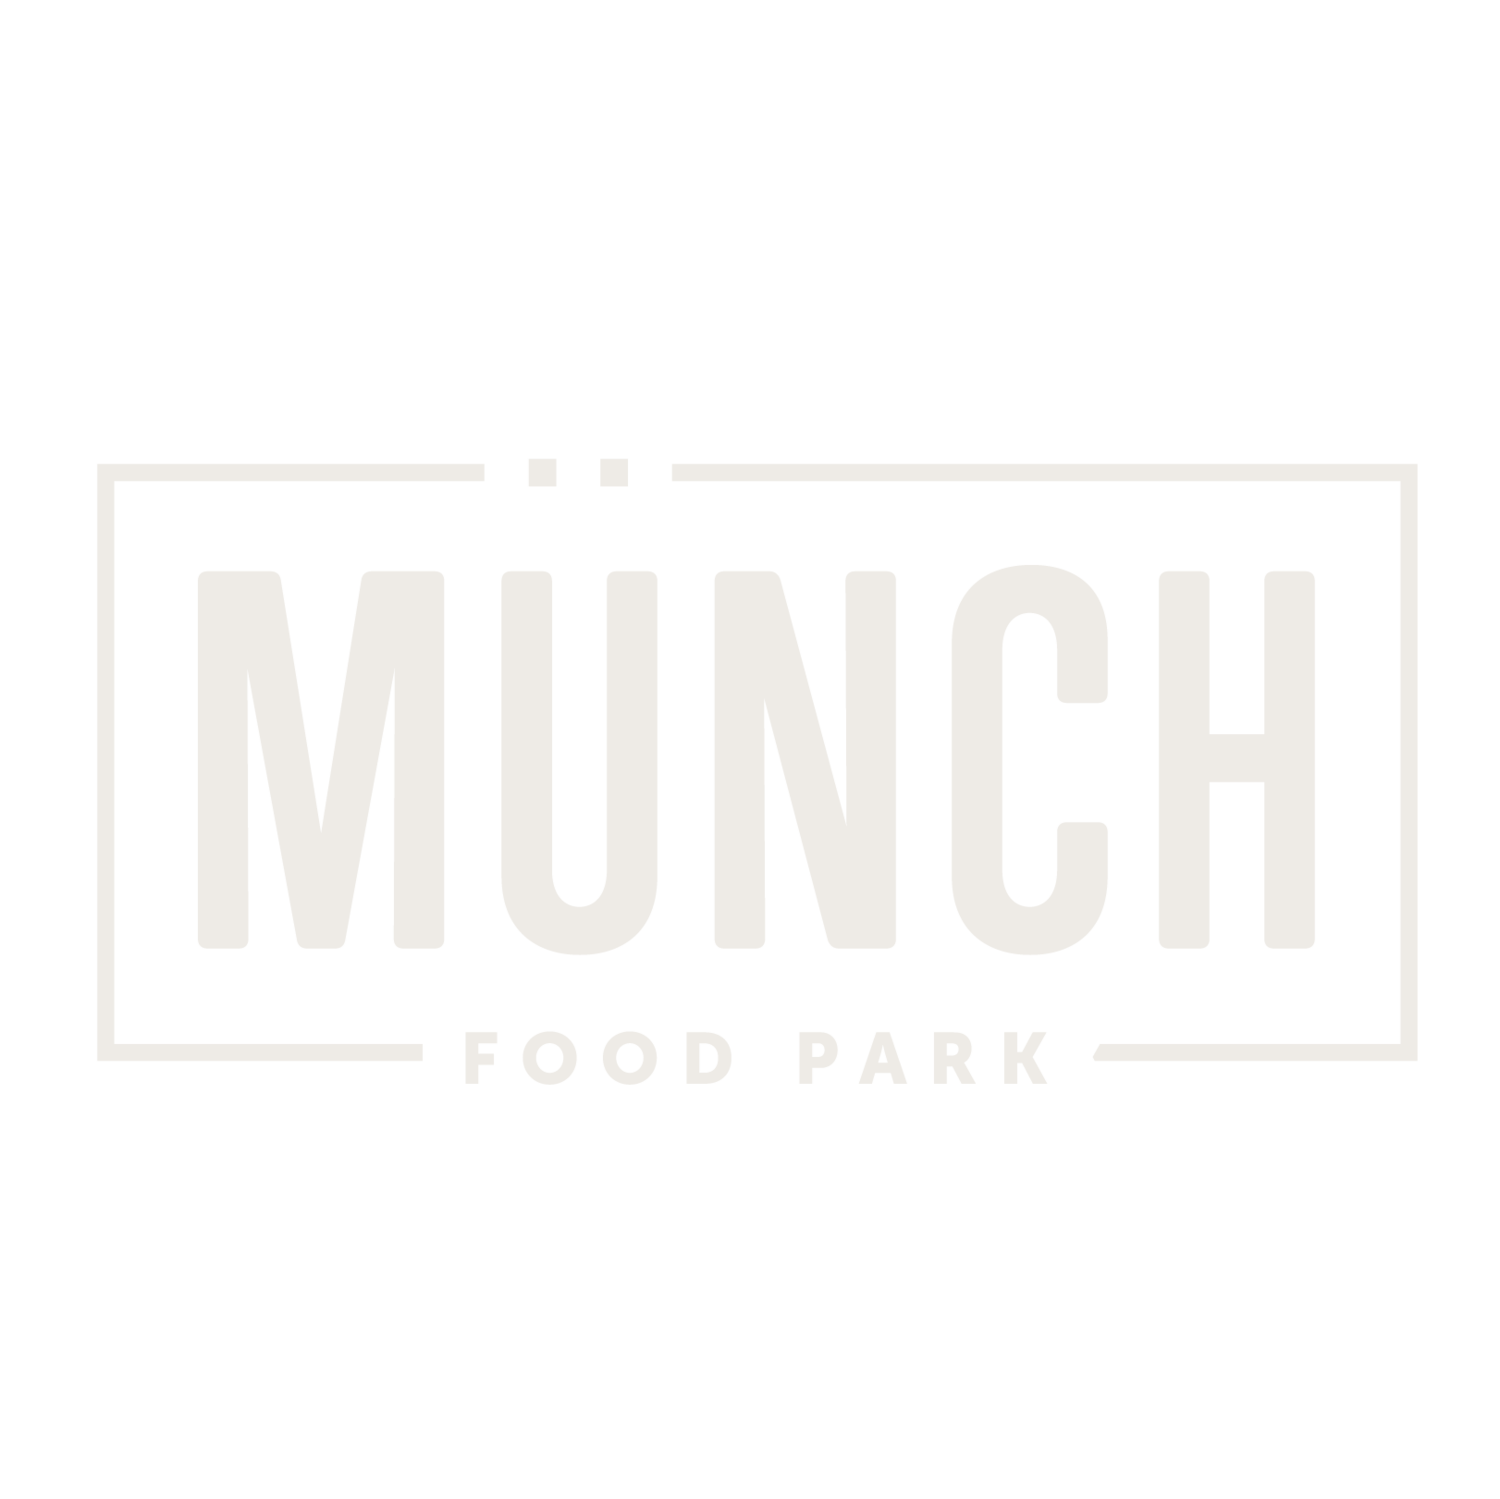 Munch Food Park